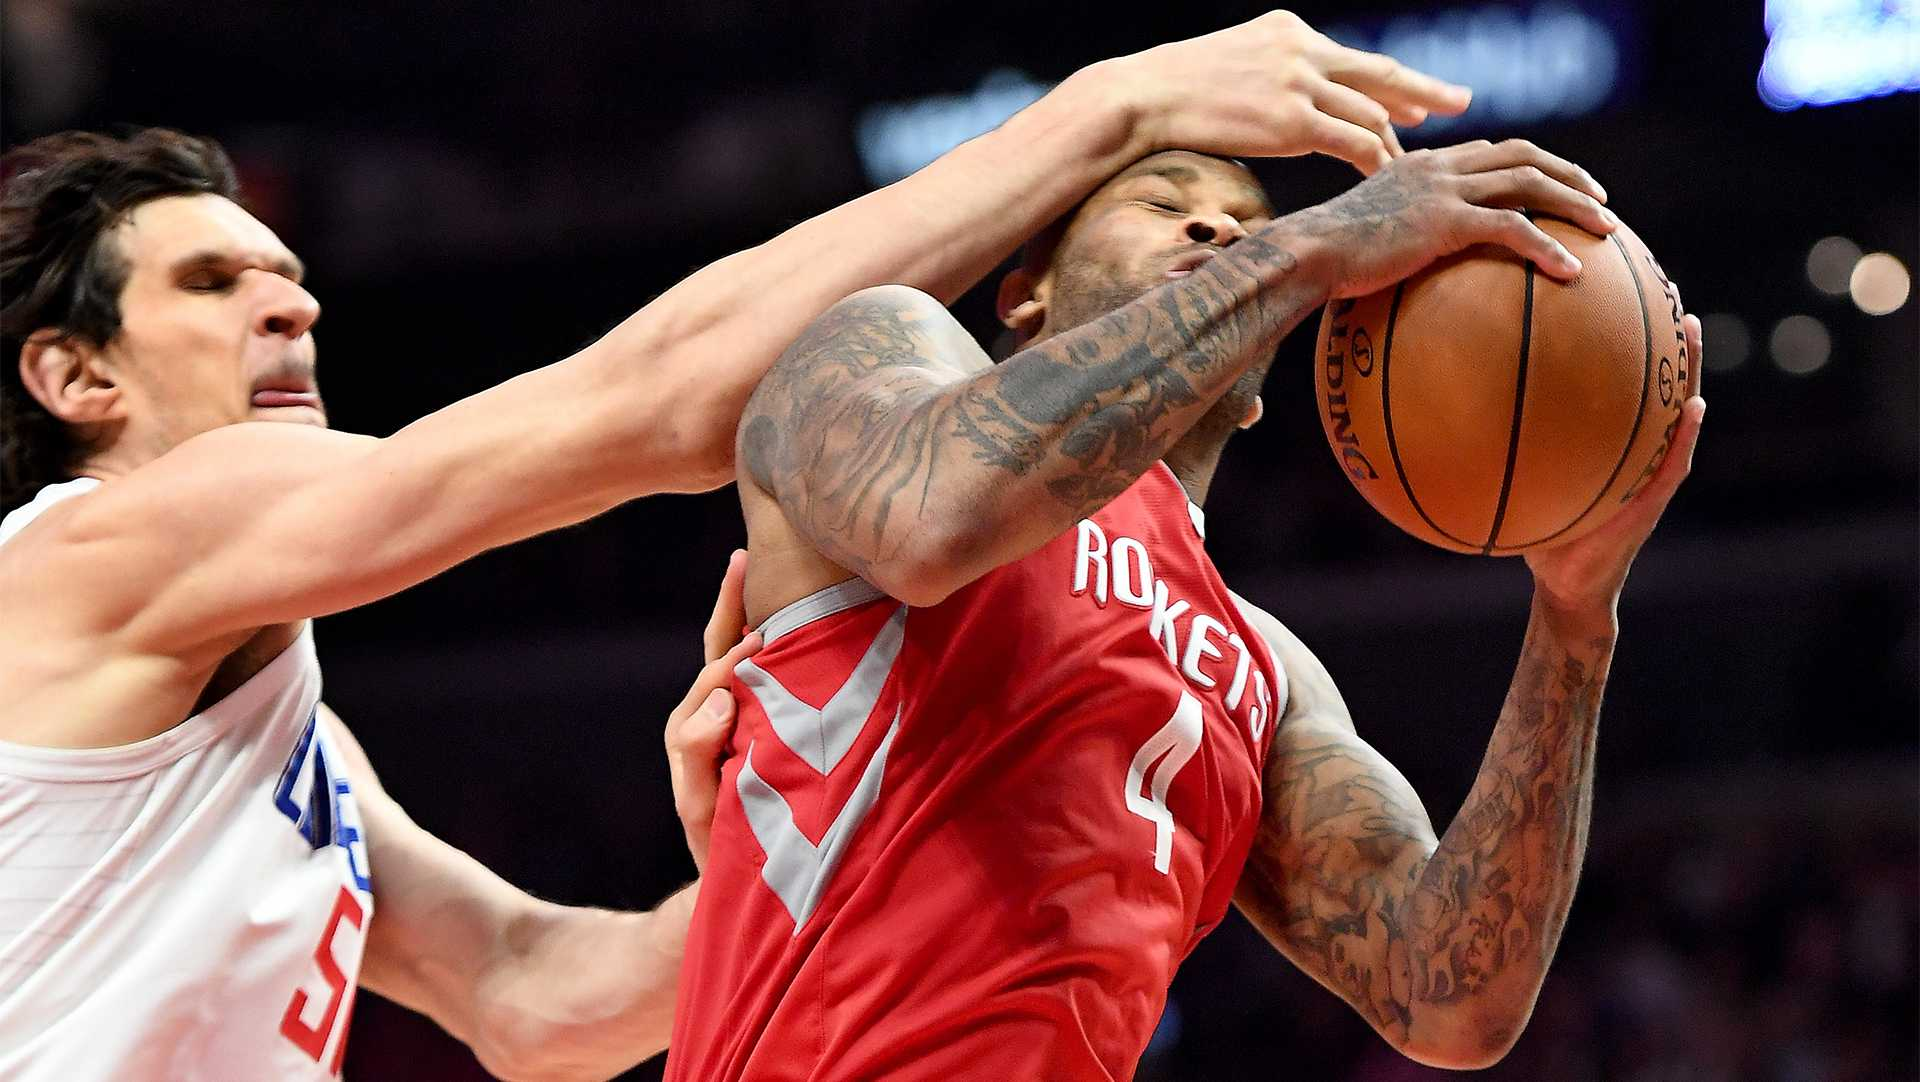 The Houston Rockets' P.J. Tucker (4) is fouled by the Los Angeles Clippers' Boban Marjanovic while grabbing a rebound at the Staples Center in Los Angeles on Wednesday, Feb. 28, 2018. (Wally Skalij/Los Angeles Times/TNS)